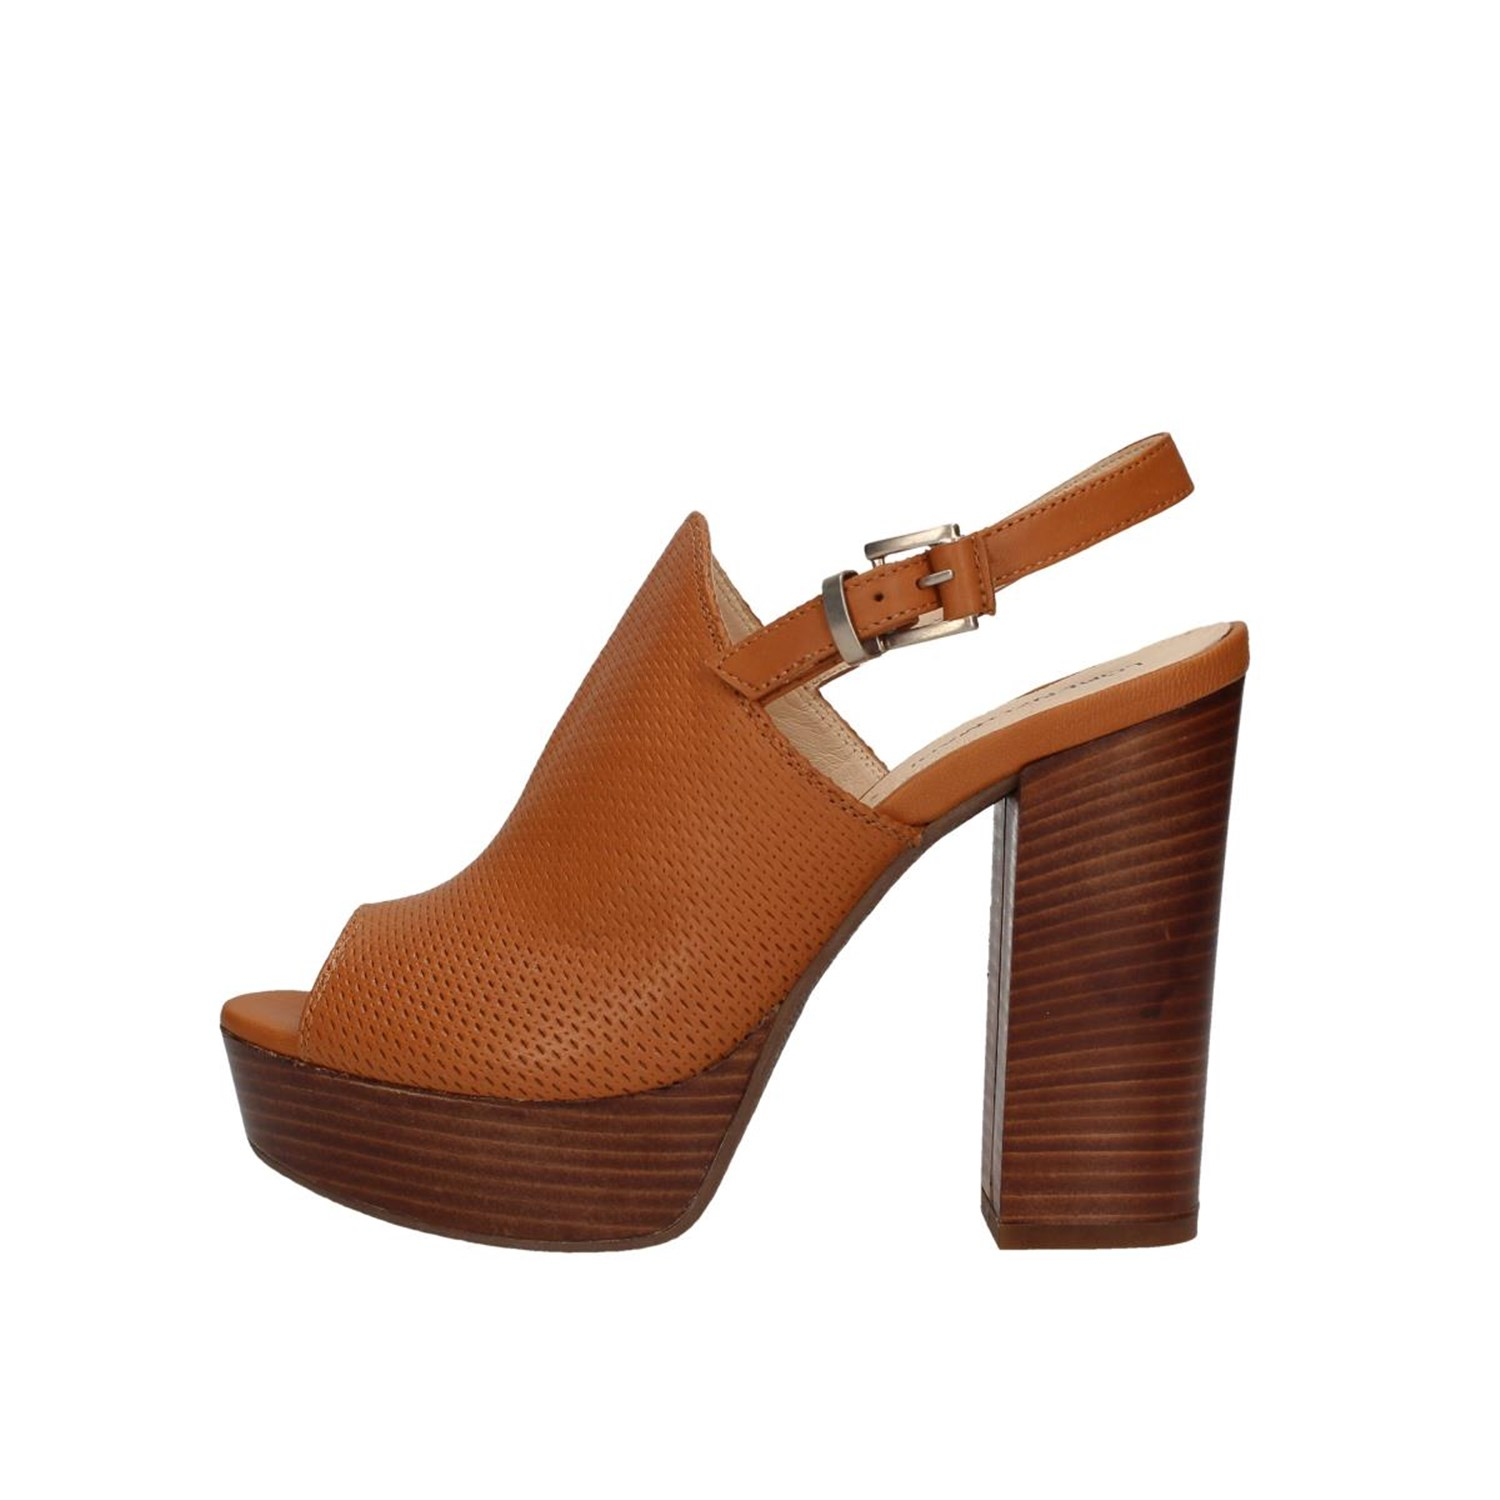 Lorenzo Mari 585 Leather Shoes Woman